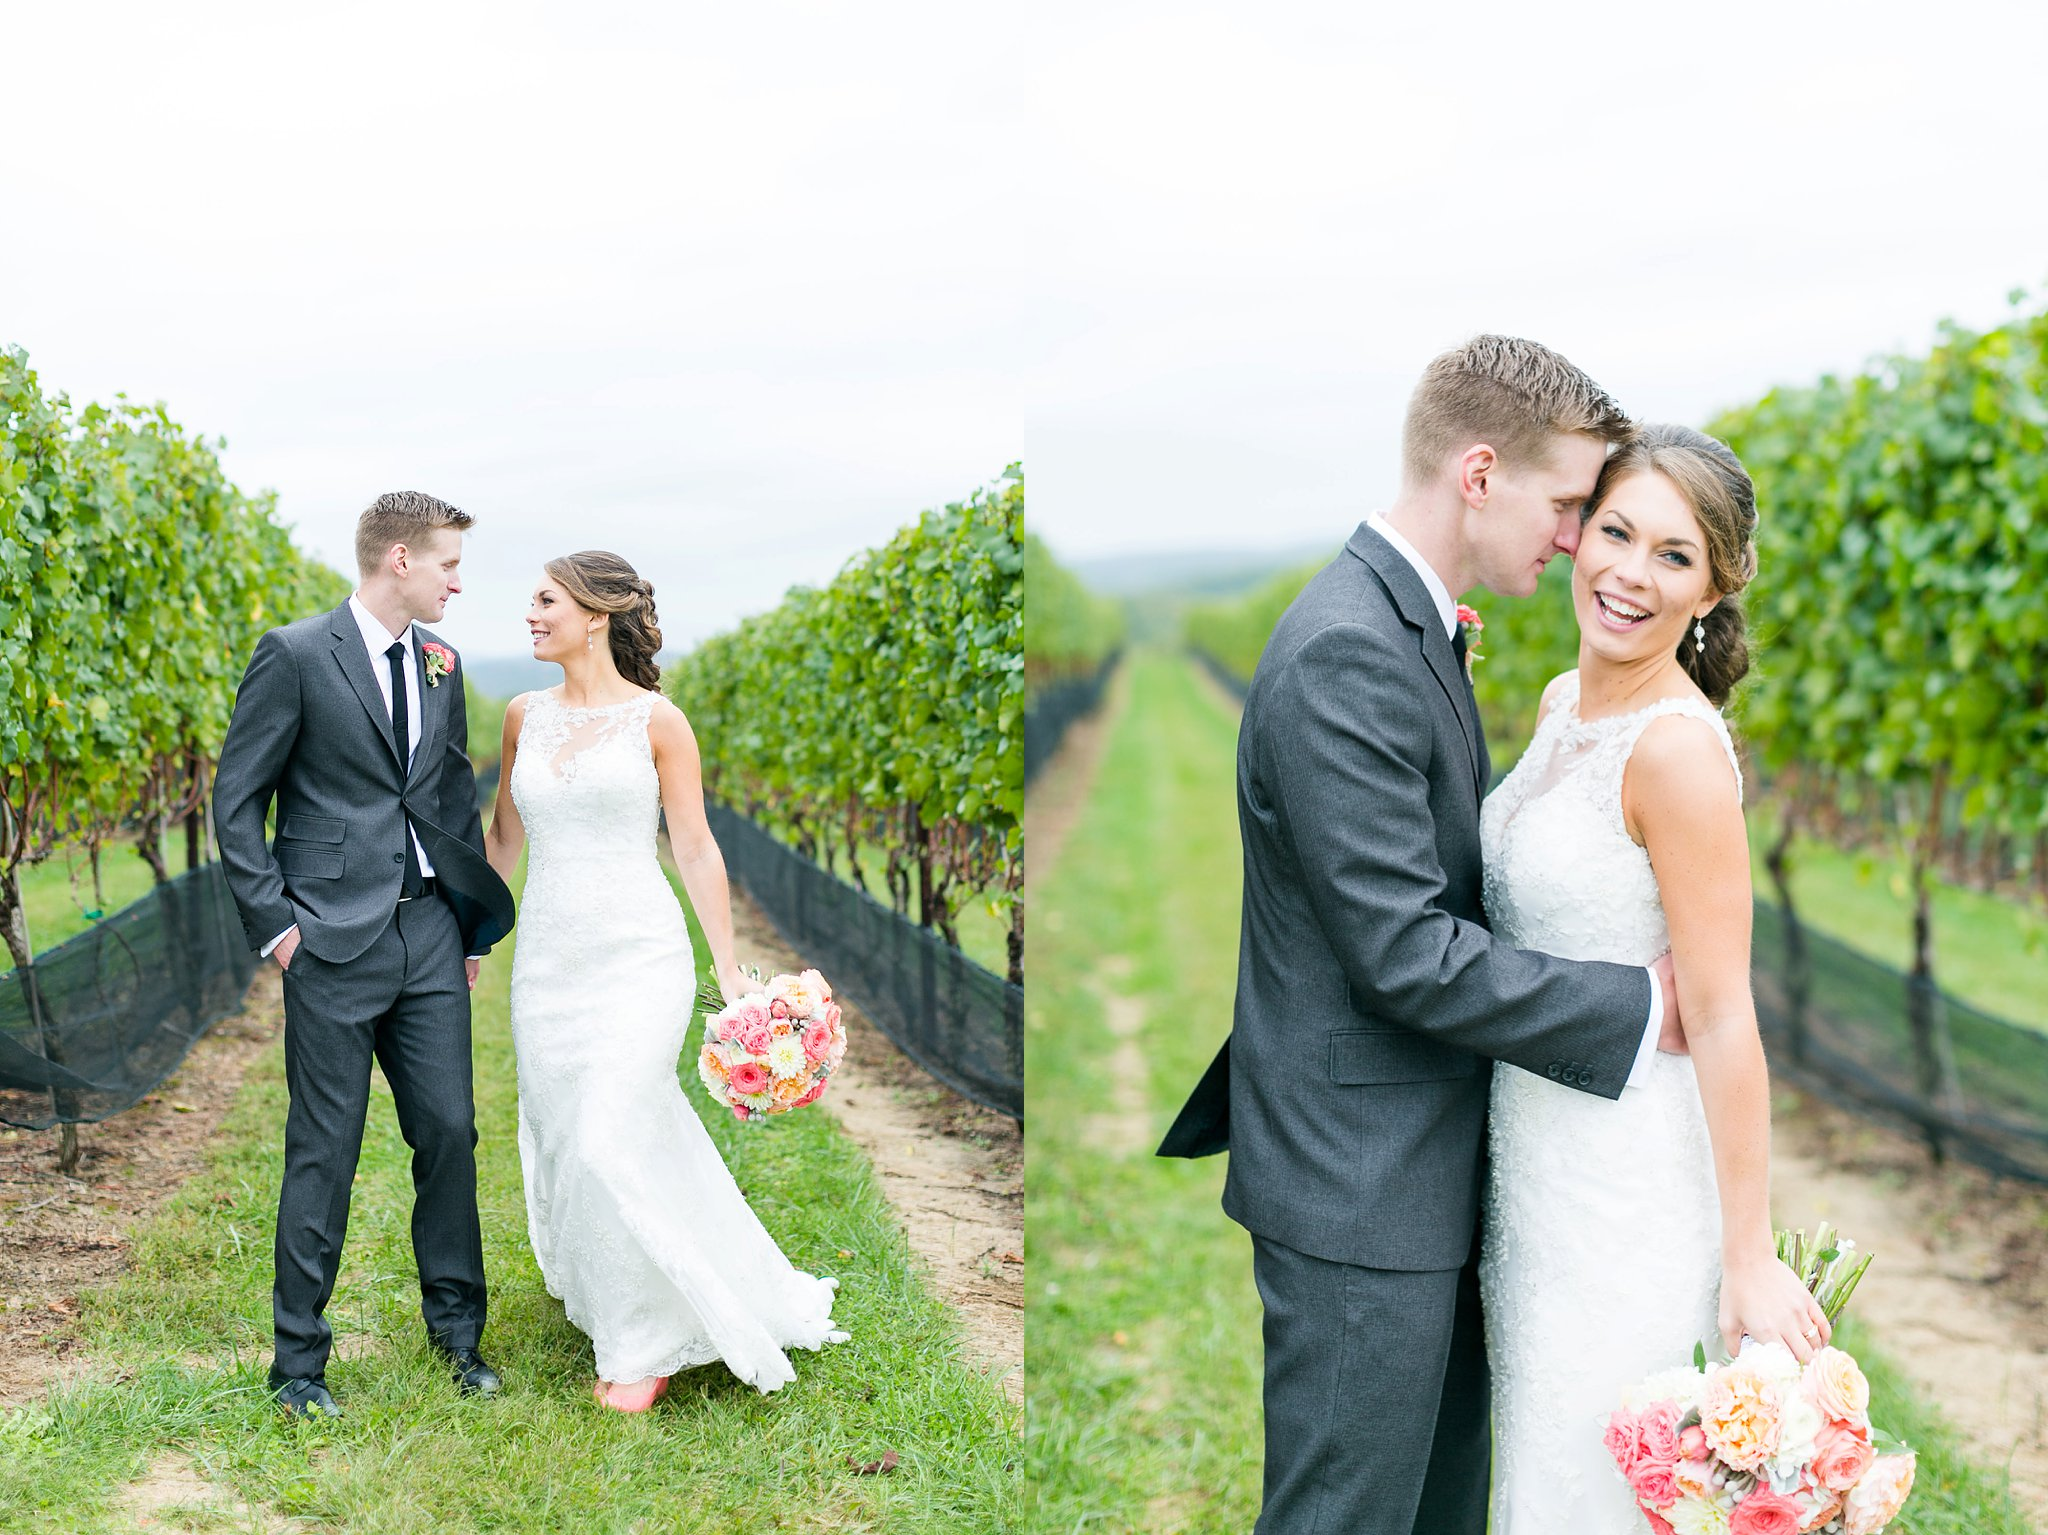 Stone Tower Winery Wedding Photos Virginia Wedding Photographer Megan Kelsey Photography Sam & Angela-215.jpg